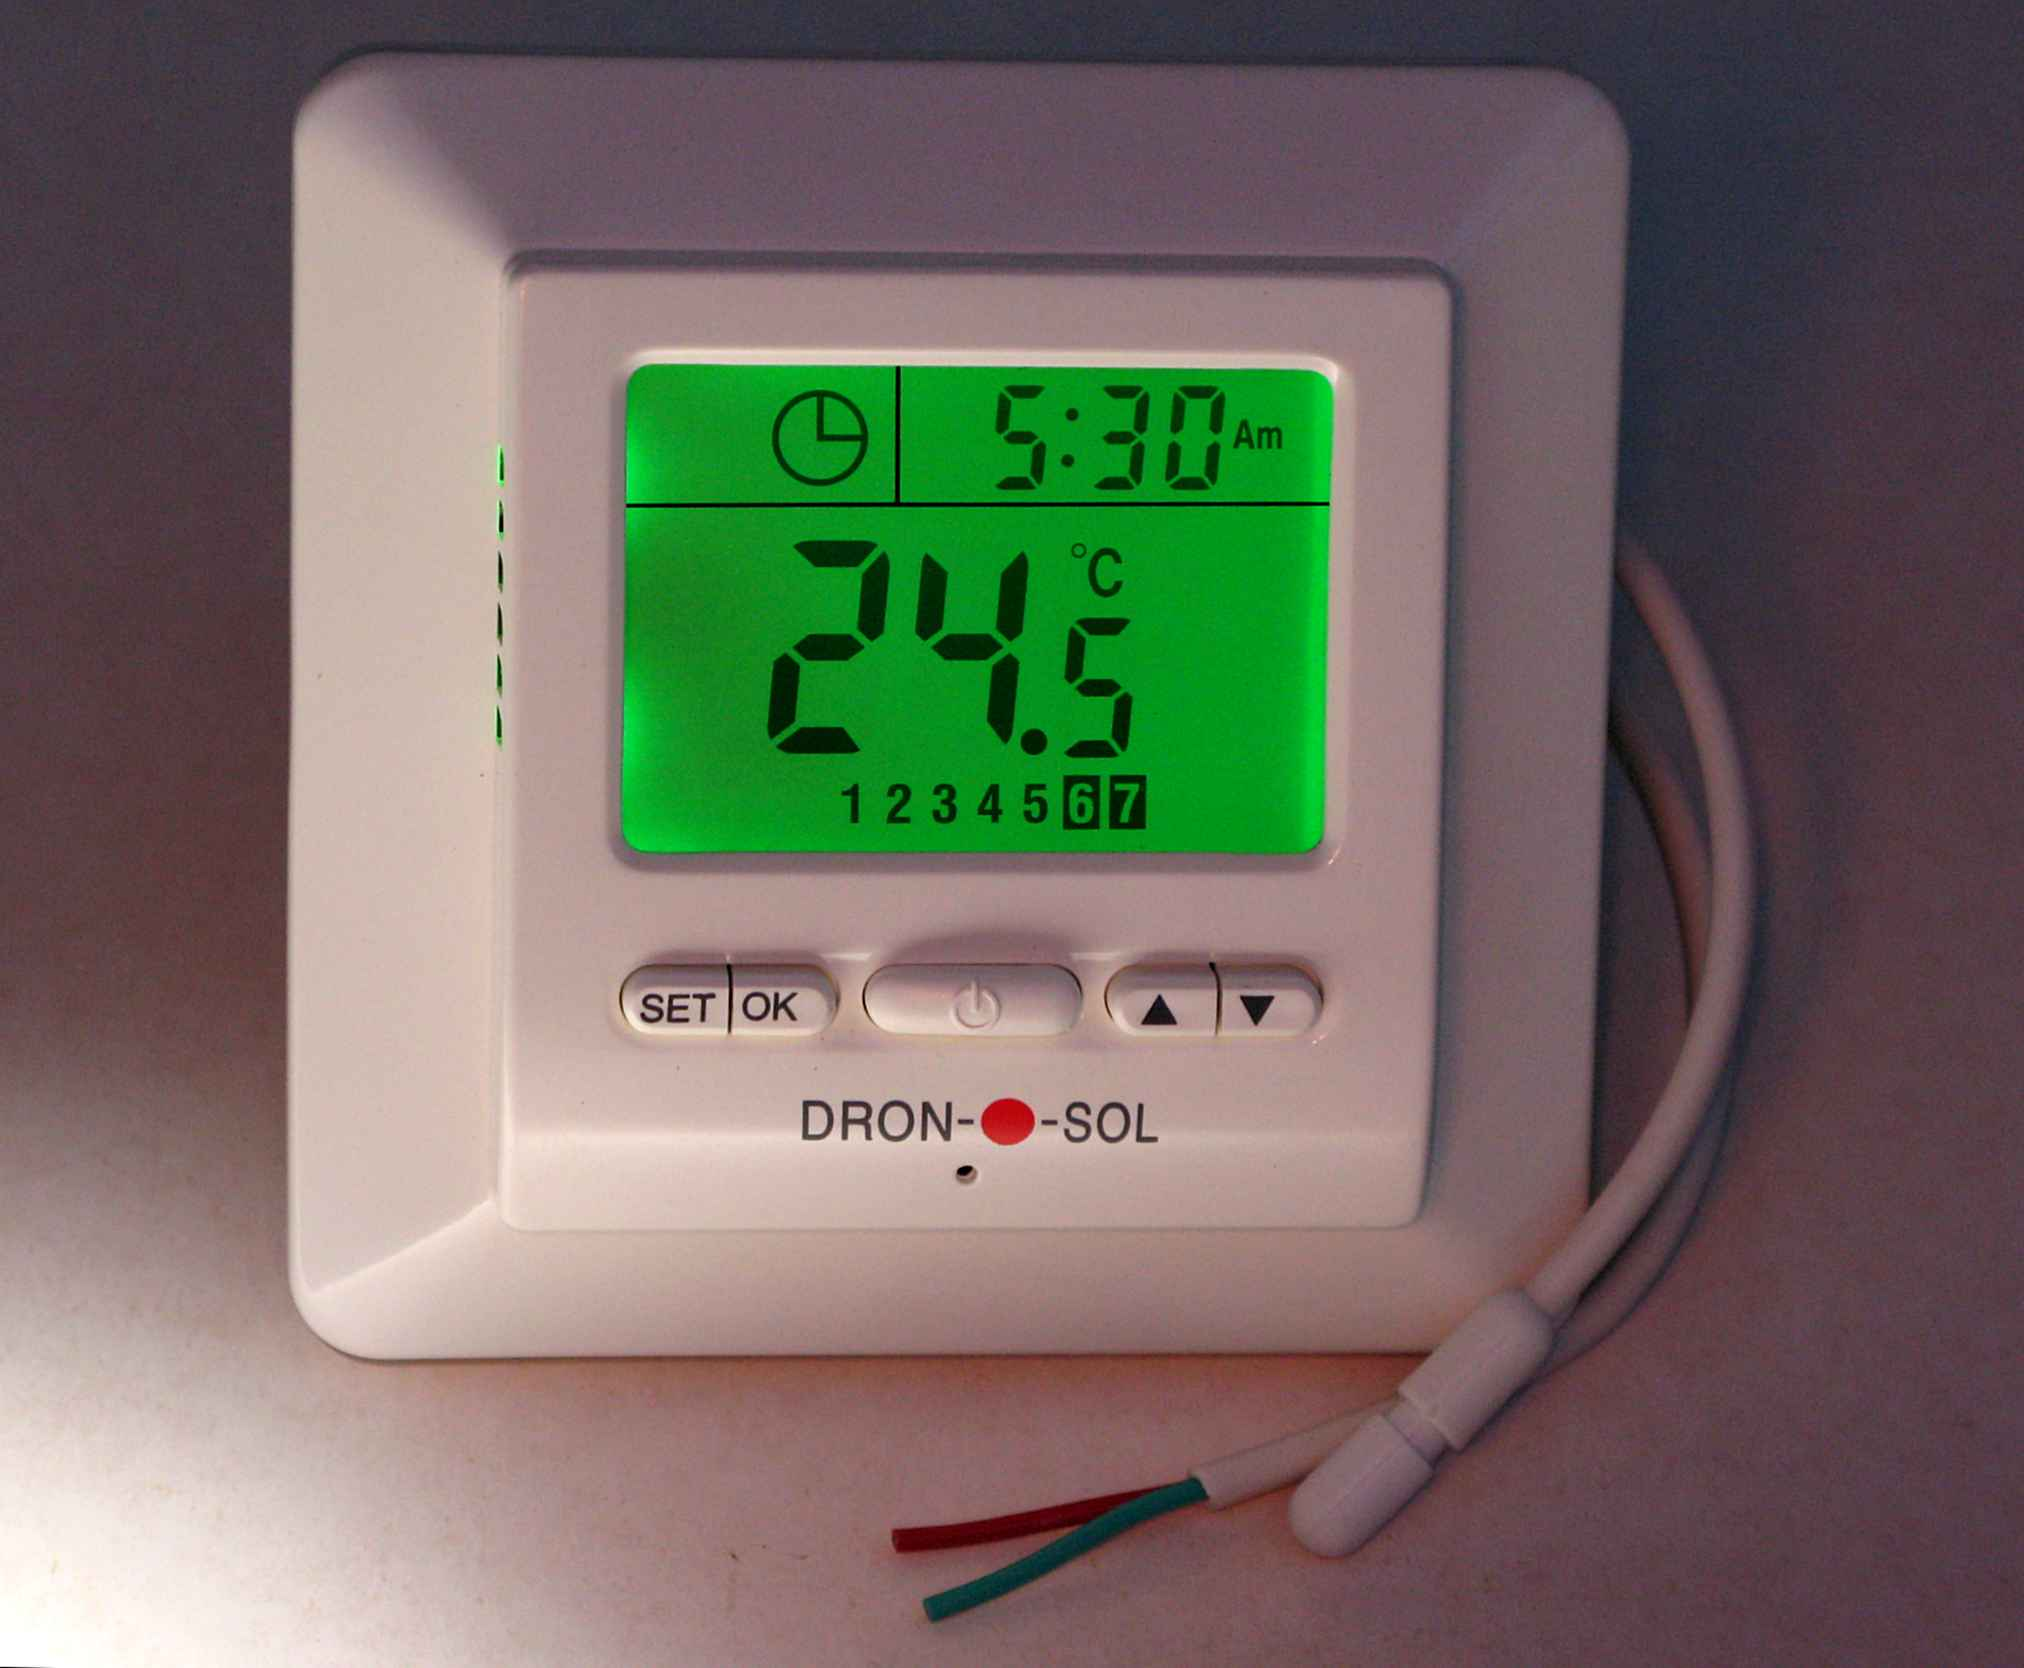 DRON-o-SOL